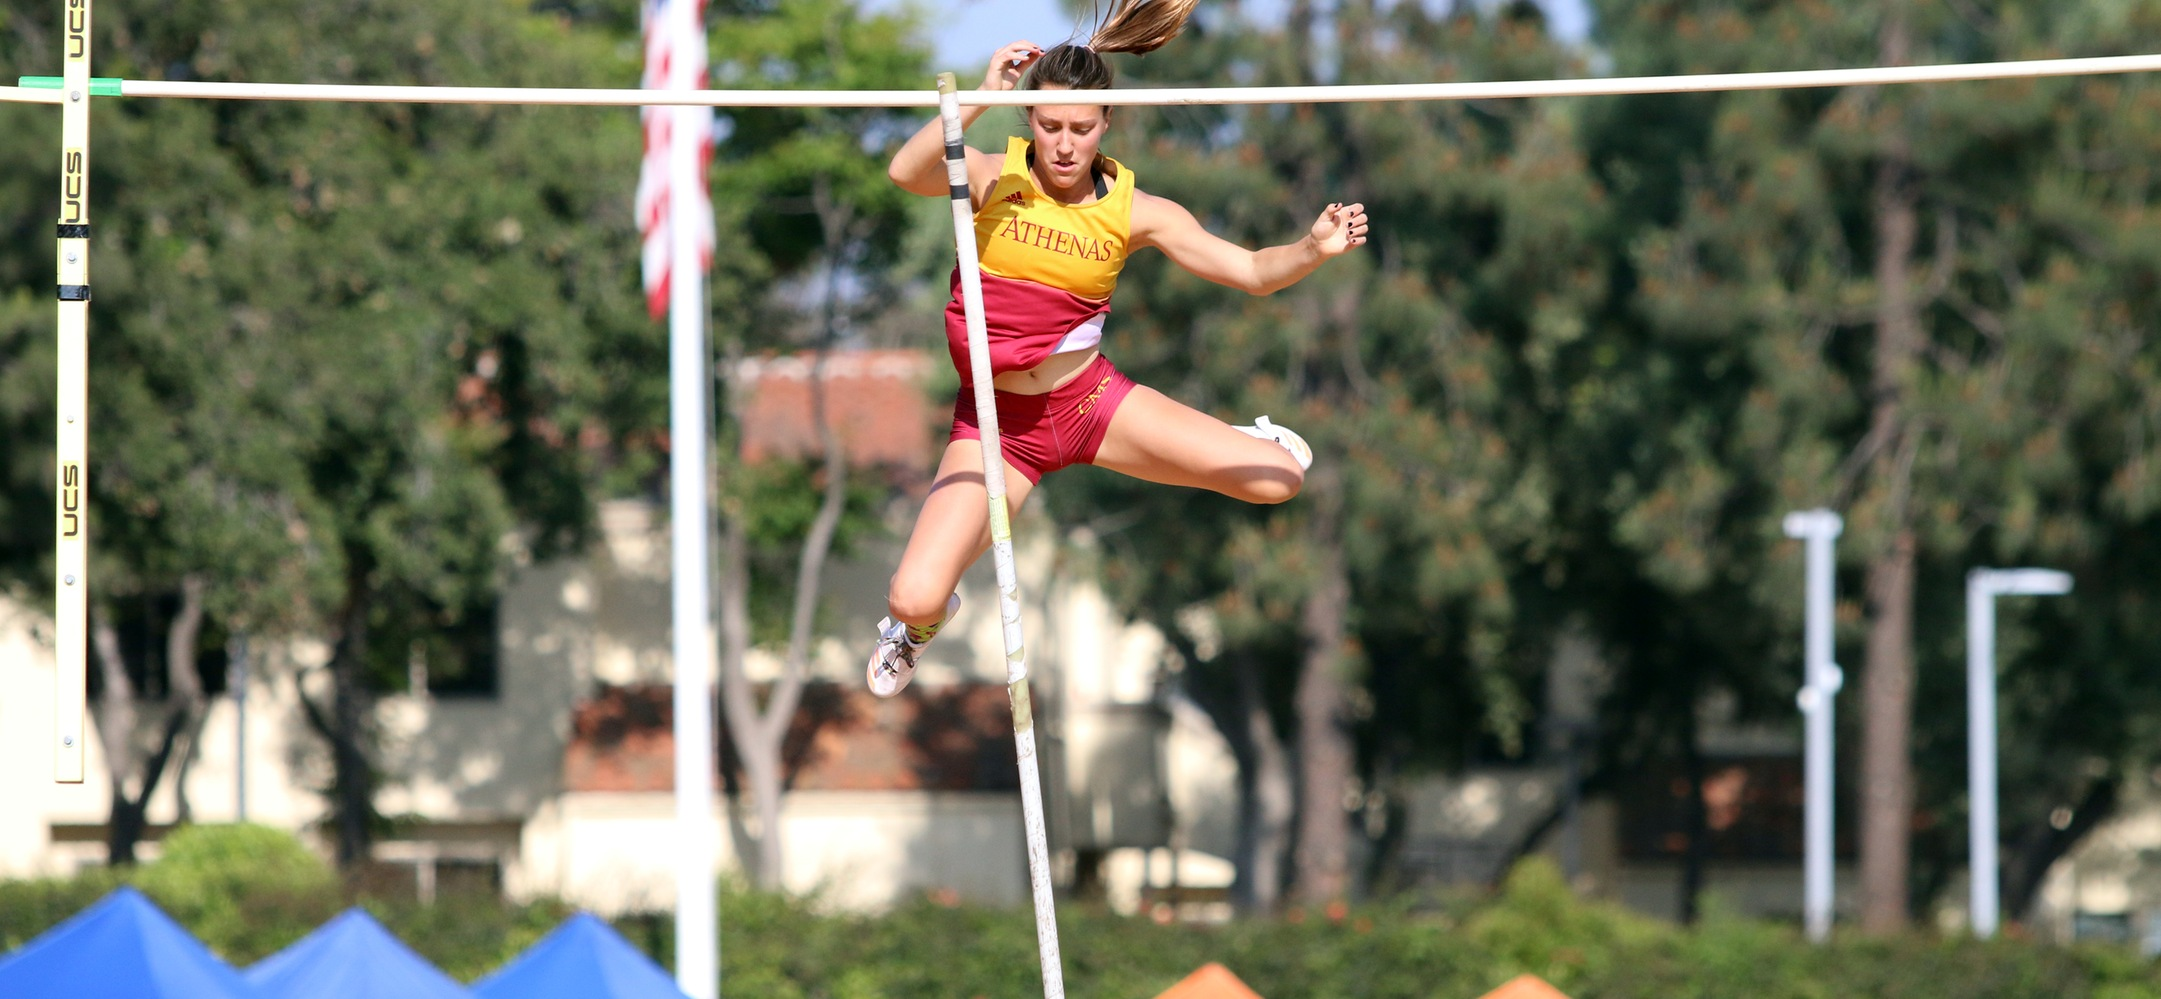 Jacque Desmond cleared 13 feet to set a new SCIAC record and win the league title on Saturday (photo by Kiubon Kokko)